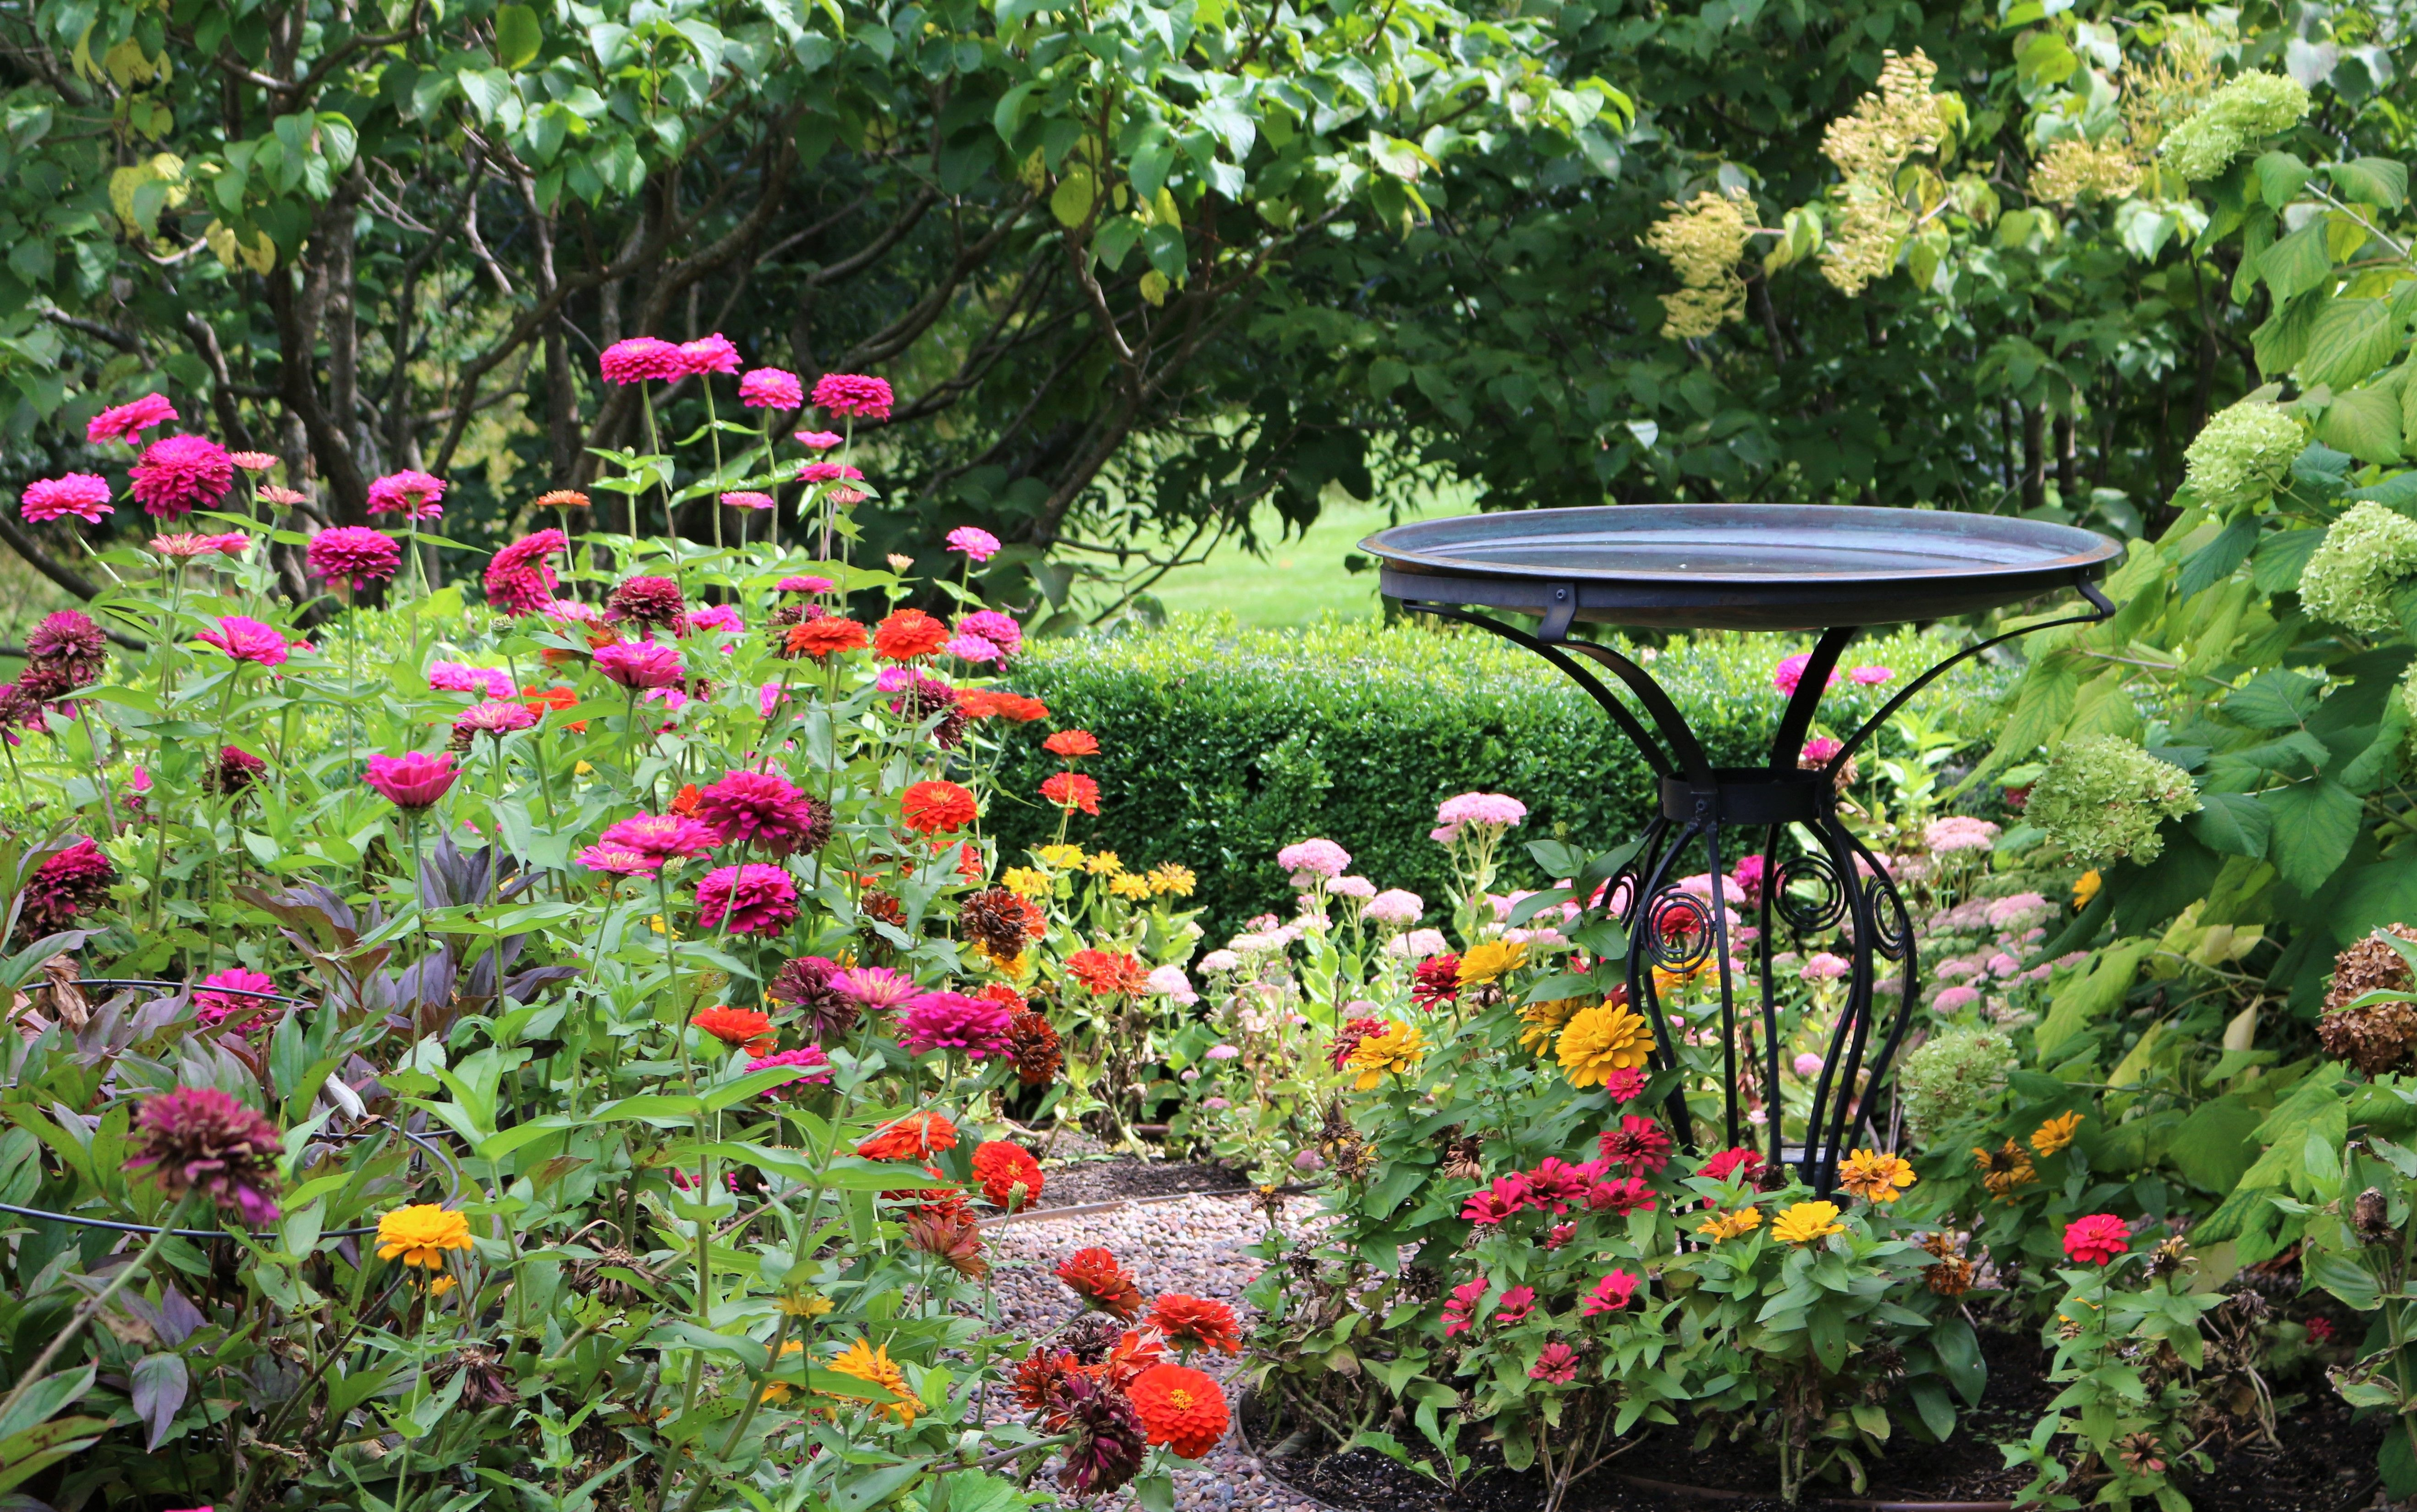 Design Your Landscape To Include The Jewel Tones Of Autumn For Extended Garden Interest Photo By Rstarovic Modern Garden Design Garden Design Modern Garden